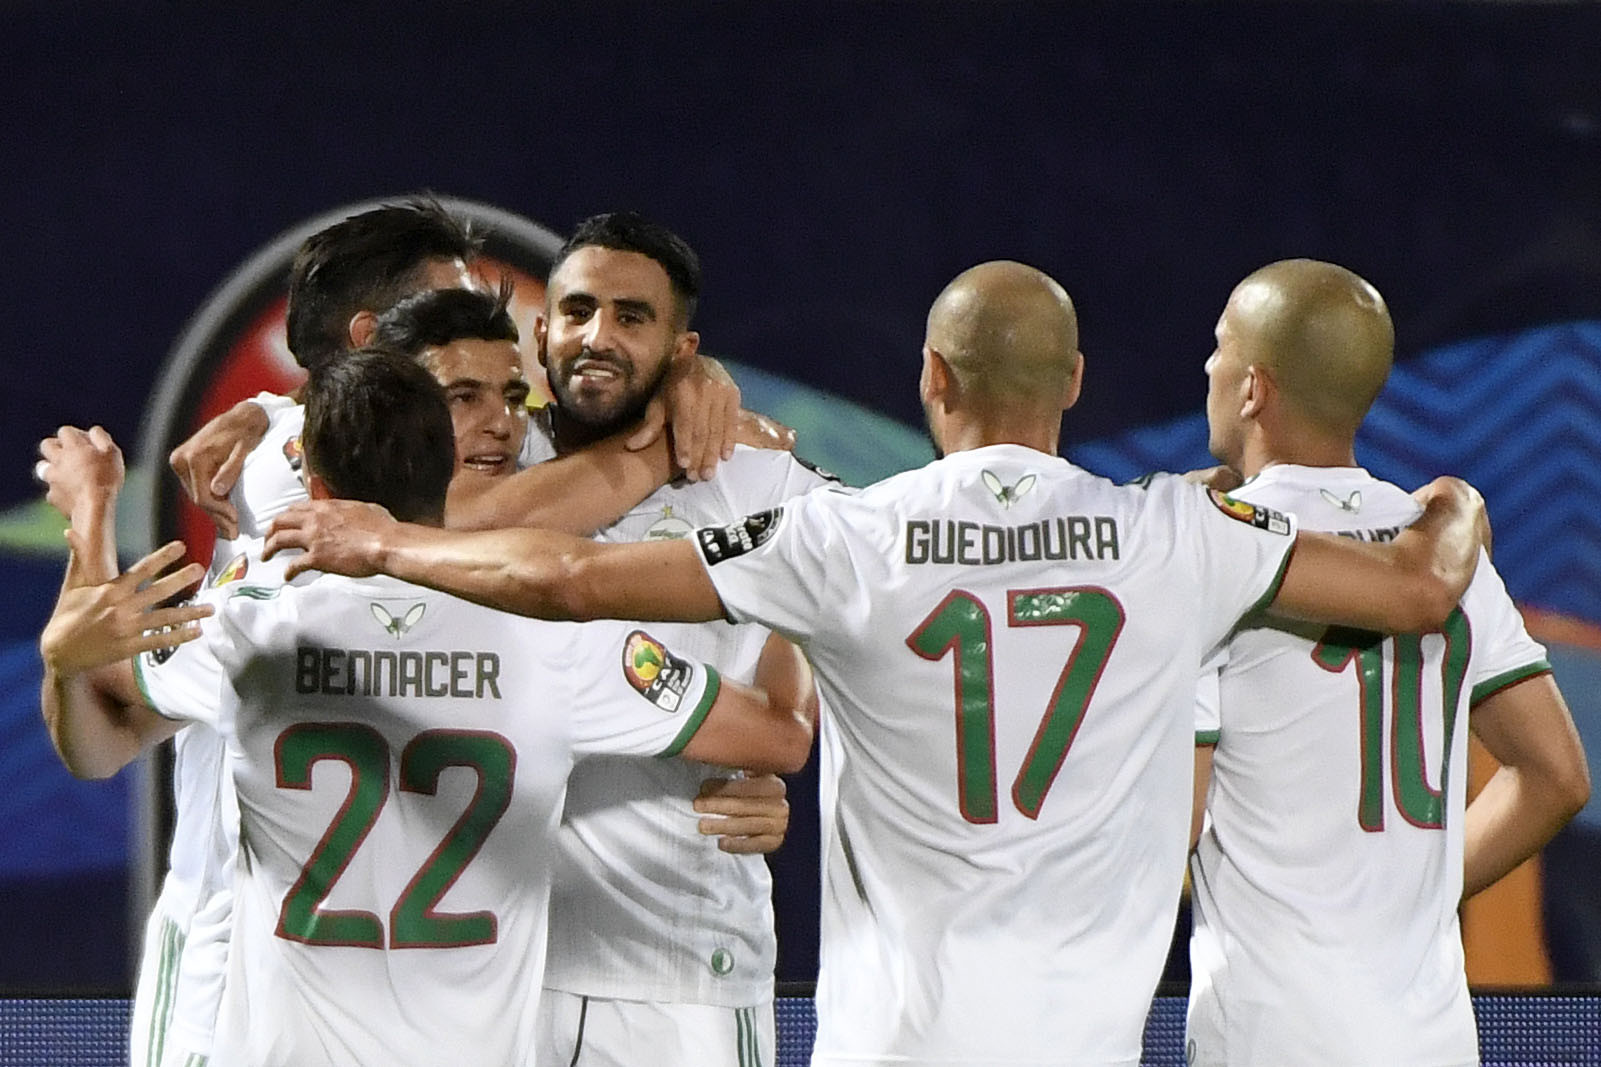 Riyad Mahrez, centre, was on target for Algeria in their win against Guinea ©Getty Images